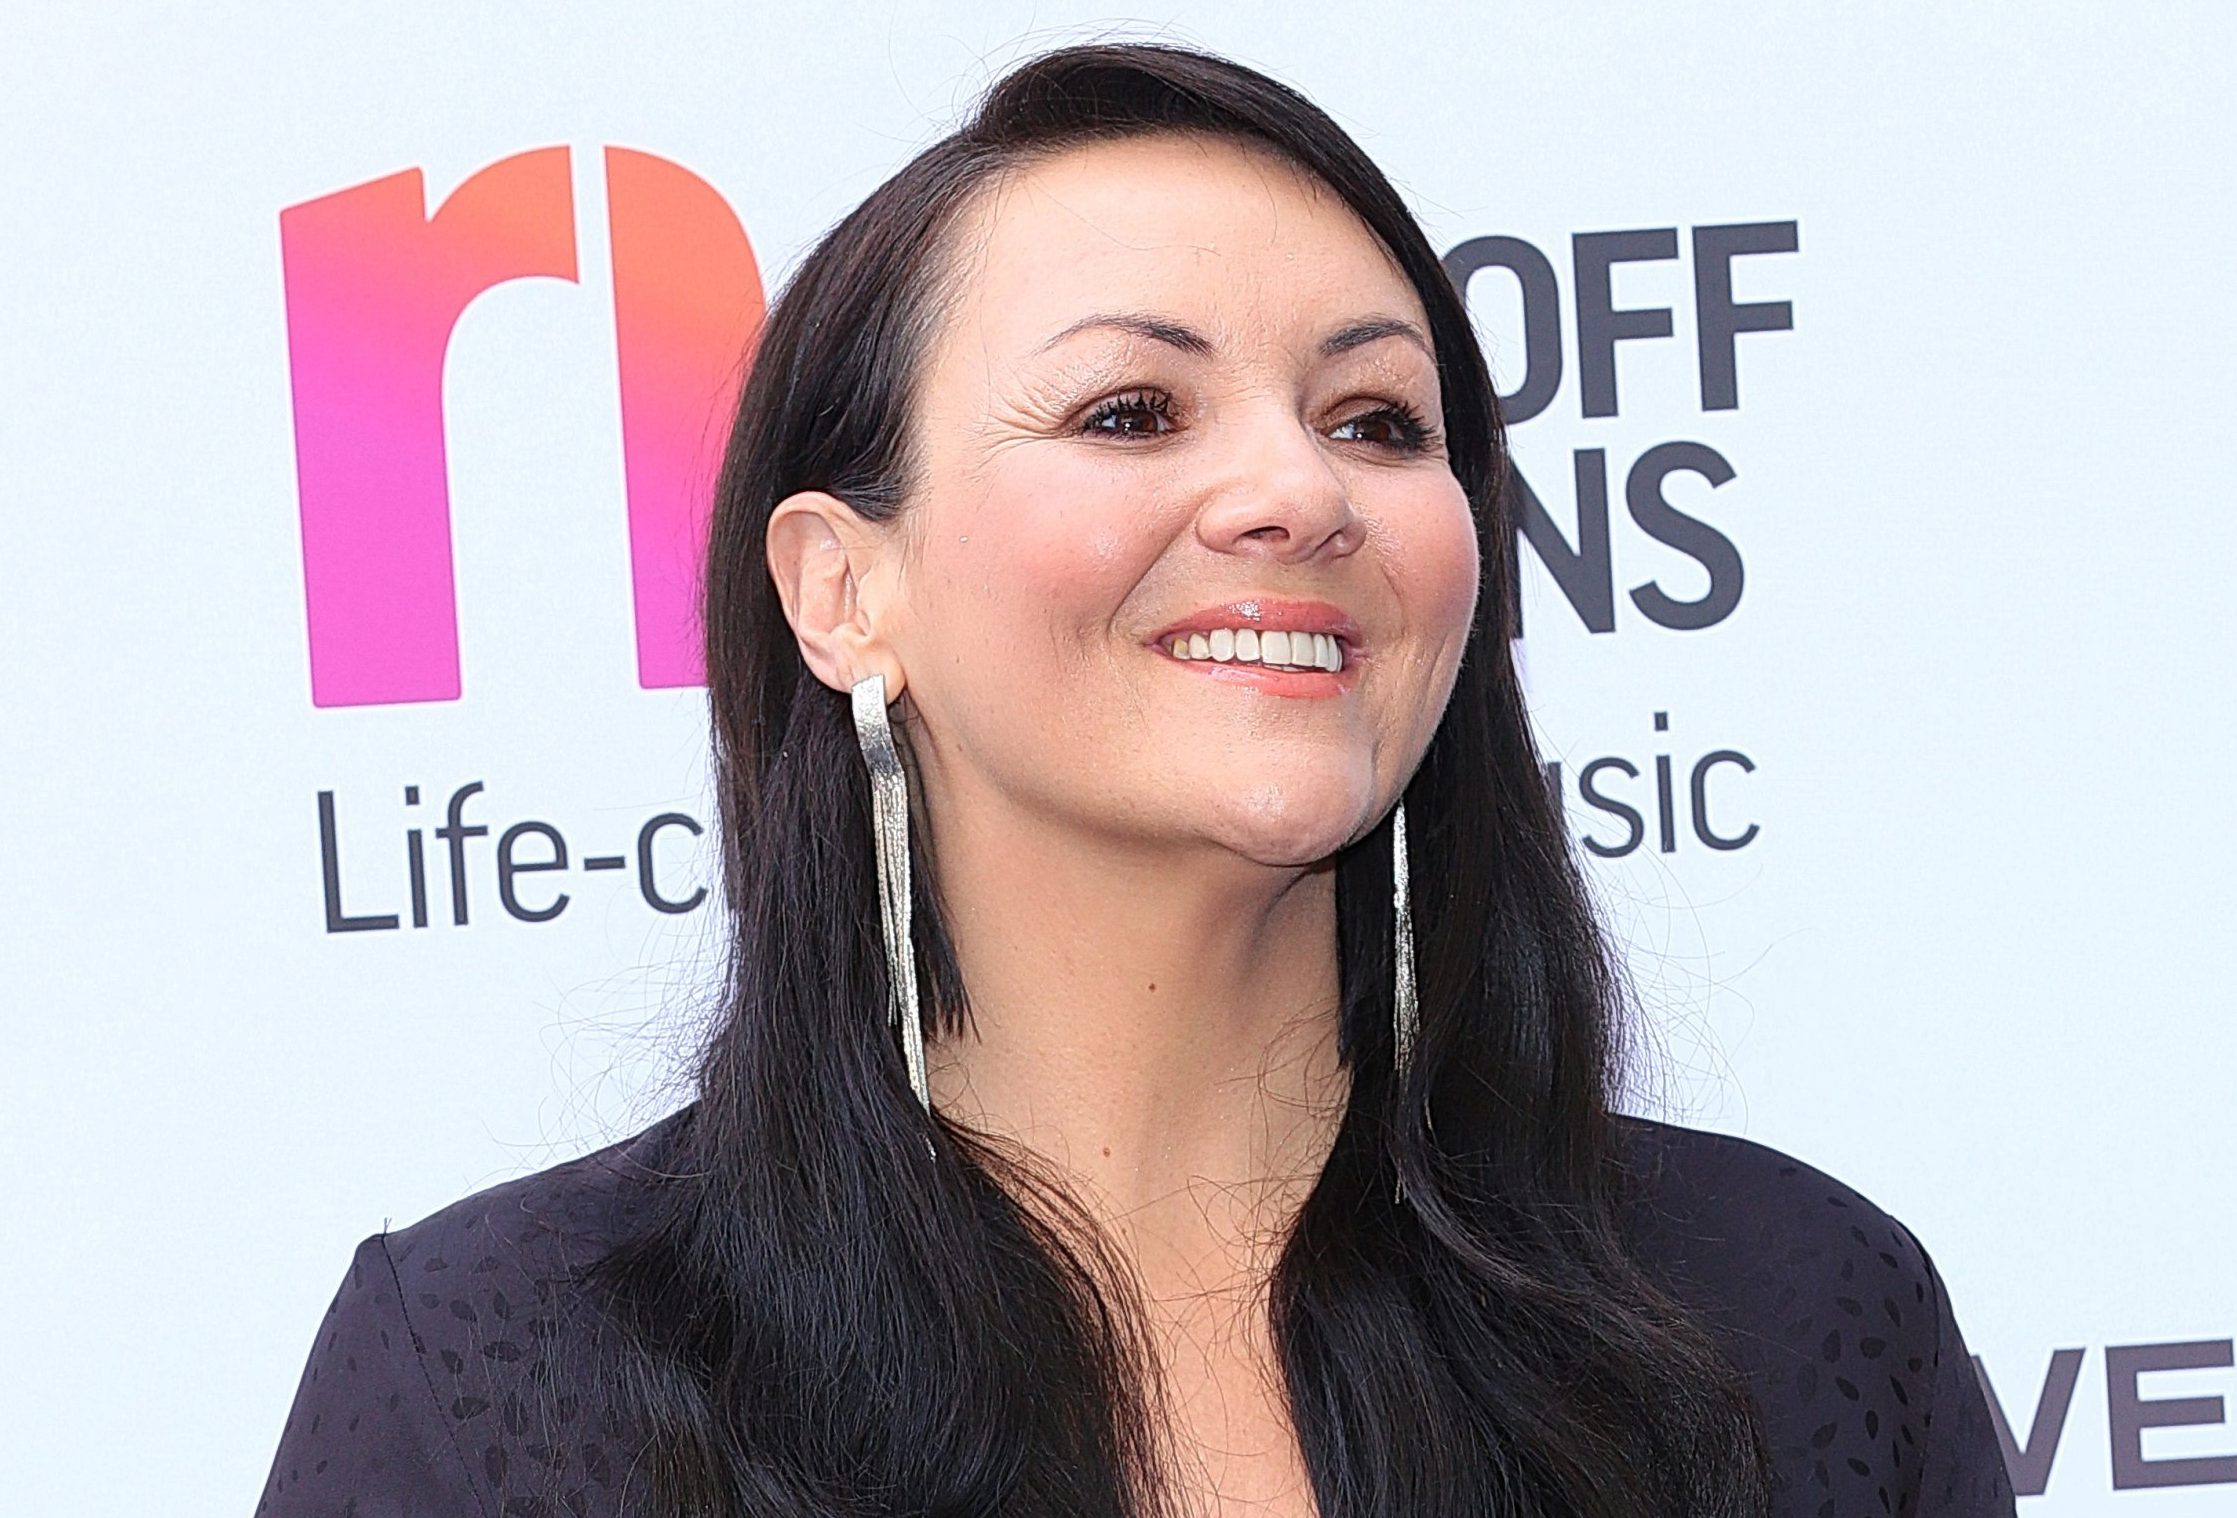 Martine McCutcheon compares body-shaming to racism: 'You wouldn't judge someone for the colour of their skin or accent'